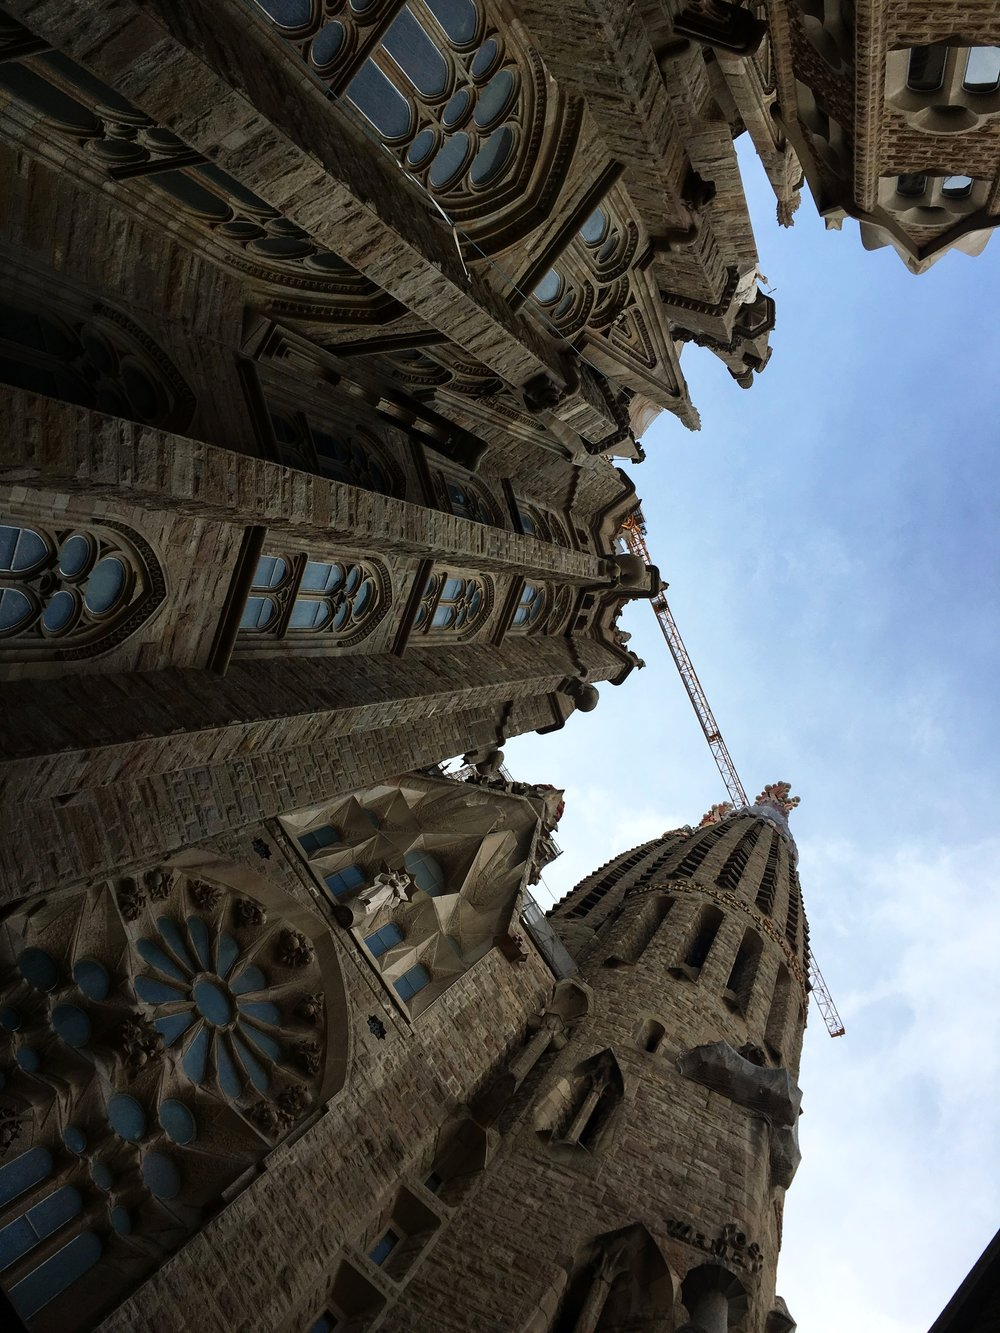 La Sagrada Família is the most iconic building by master Antoni Gaudí. Remember to get your tickets in advance to avoid long lines.